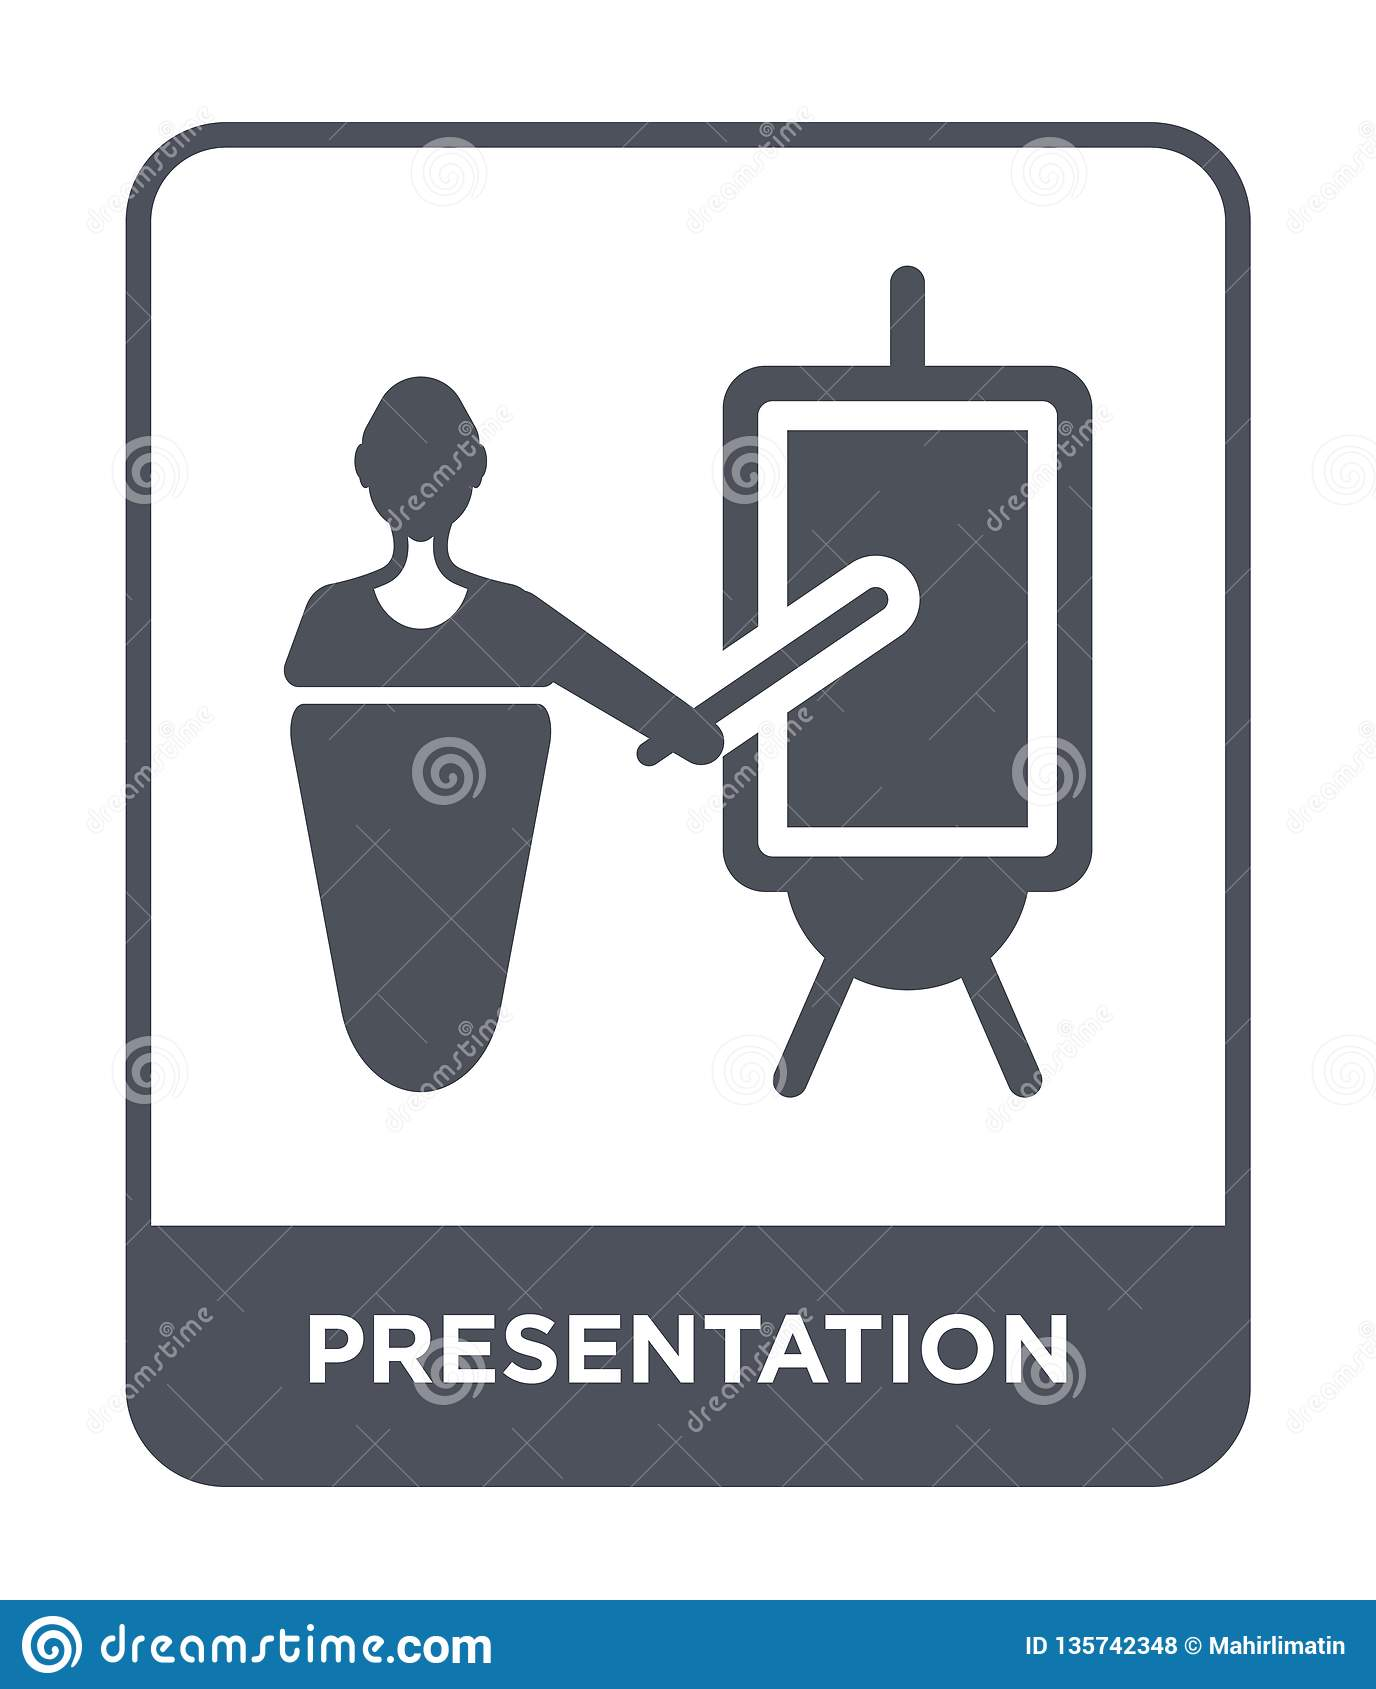 presentation icon in trendy design style. presentation icon isolated on white background. presentation vector icon simple and